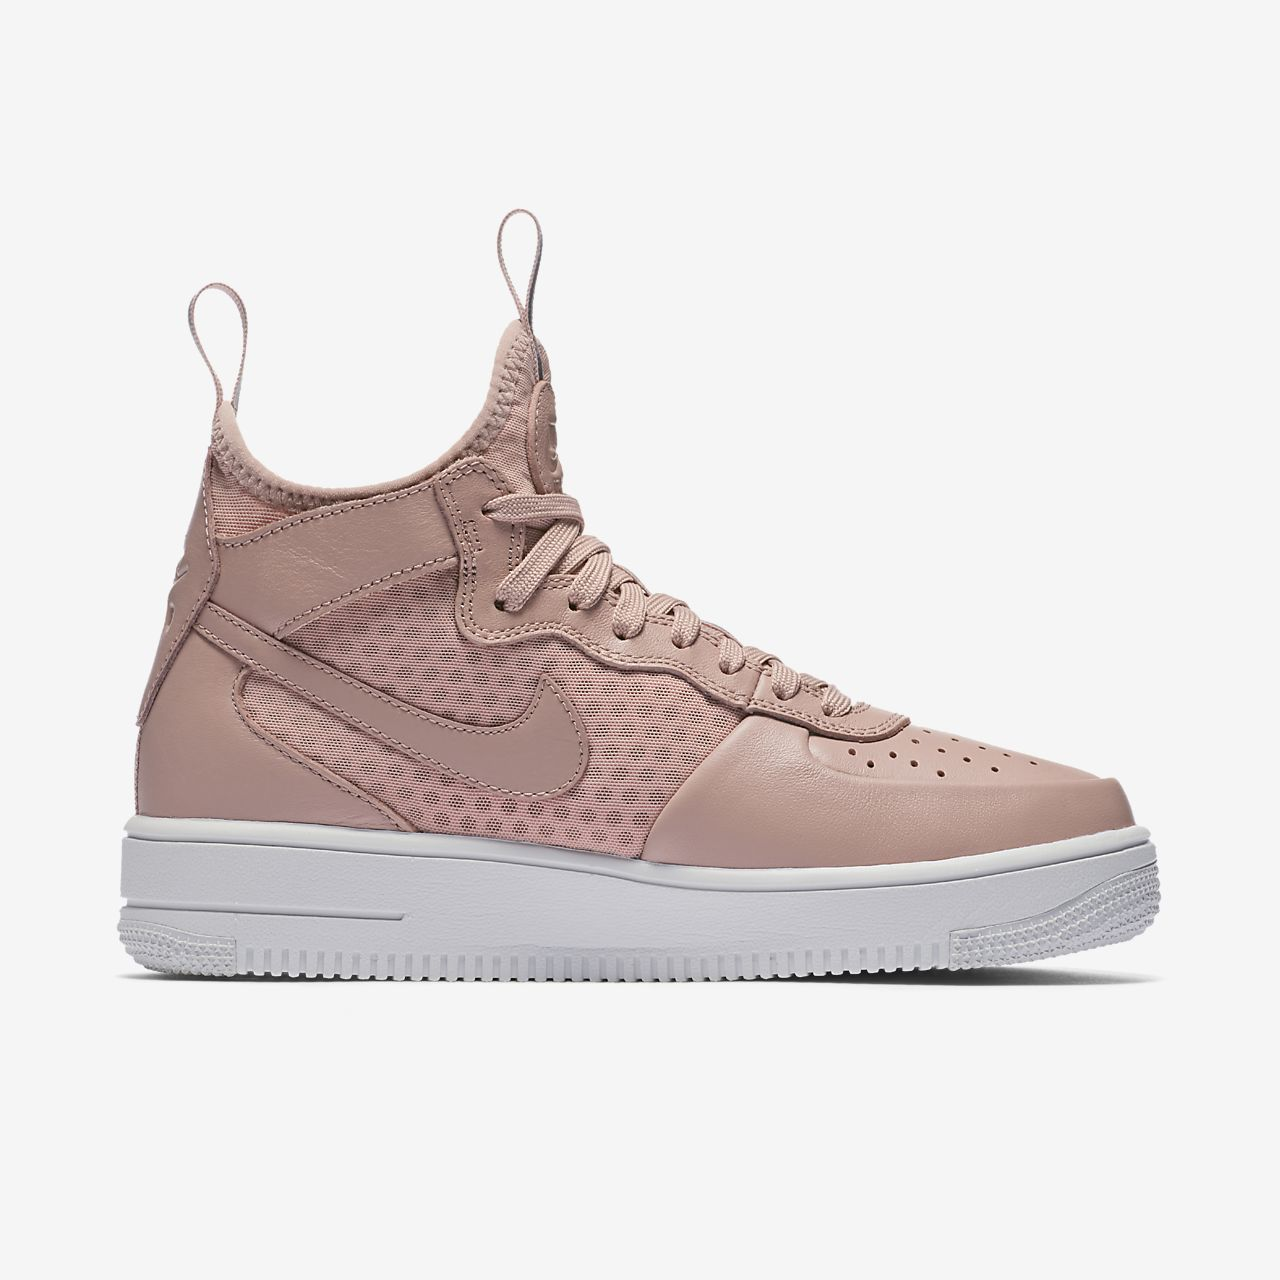 nike air force 1 ultraforce mid womens shoe nikecom